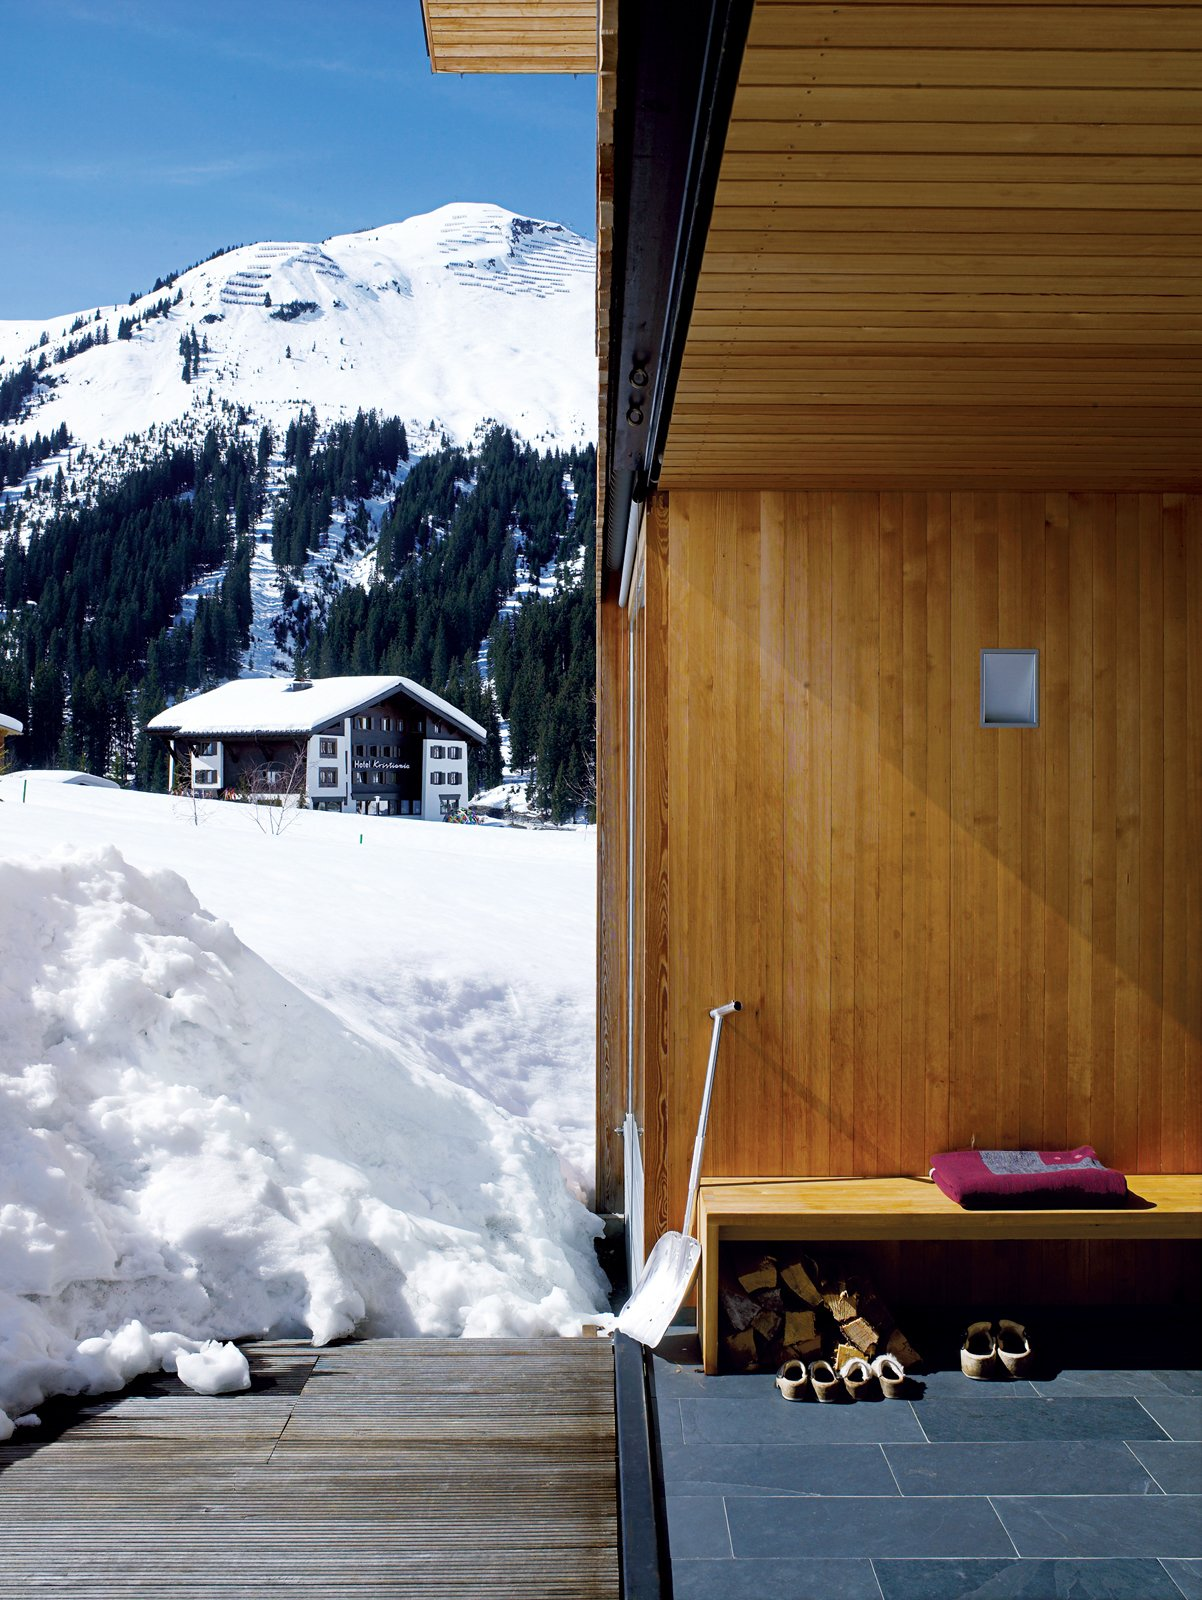 The porch also has its own protective wooden shutter, which rises upwards from a recessed pocket in the floor. Snow Proofed Hillside Family Home in Austria - Photo 8 of 8